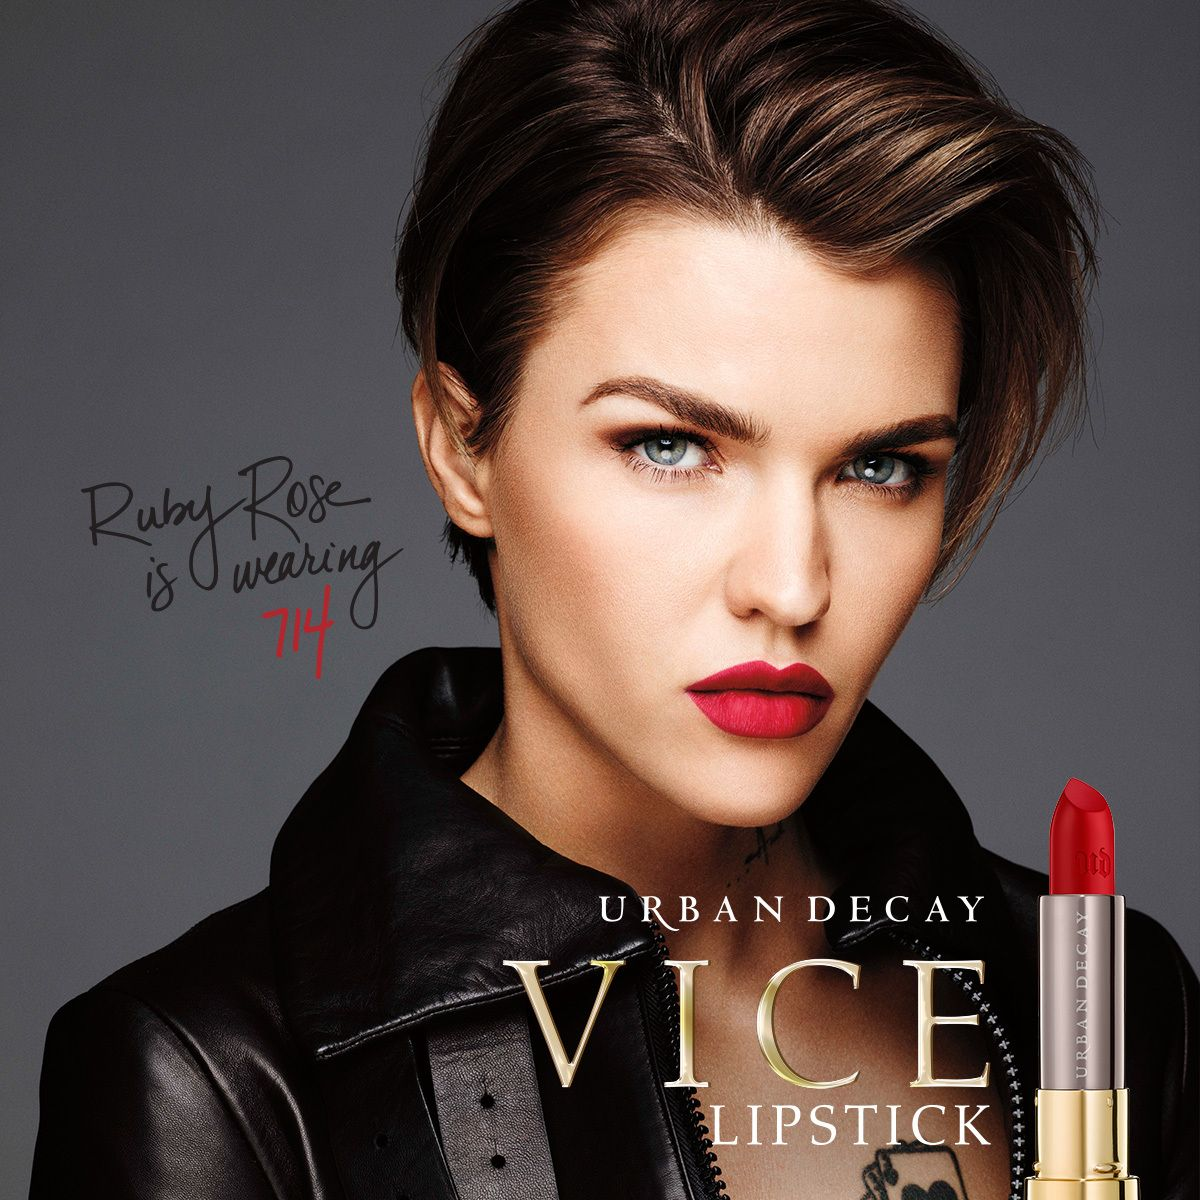 Ruby Rose wears Urban Decay's Vice lipstick in color 714